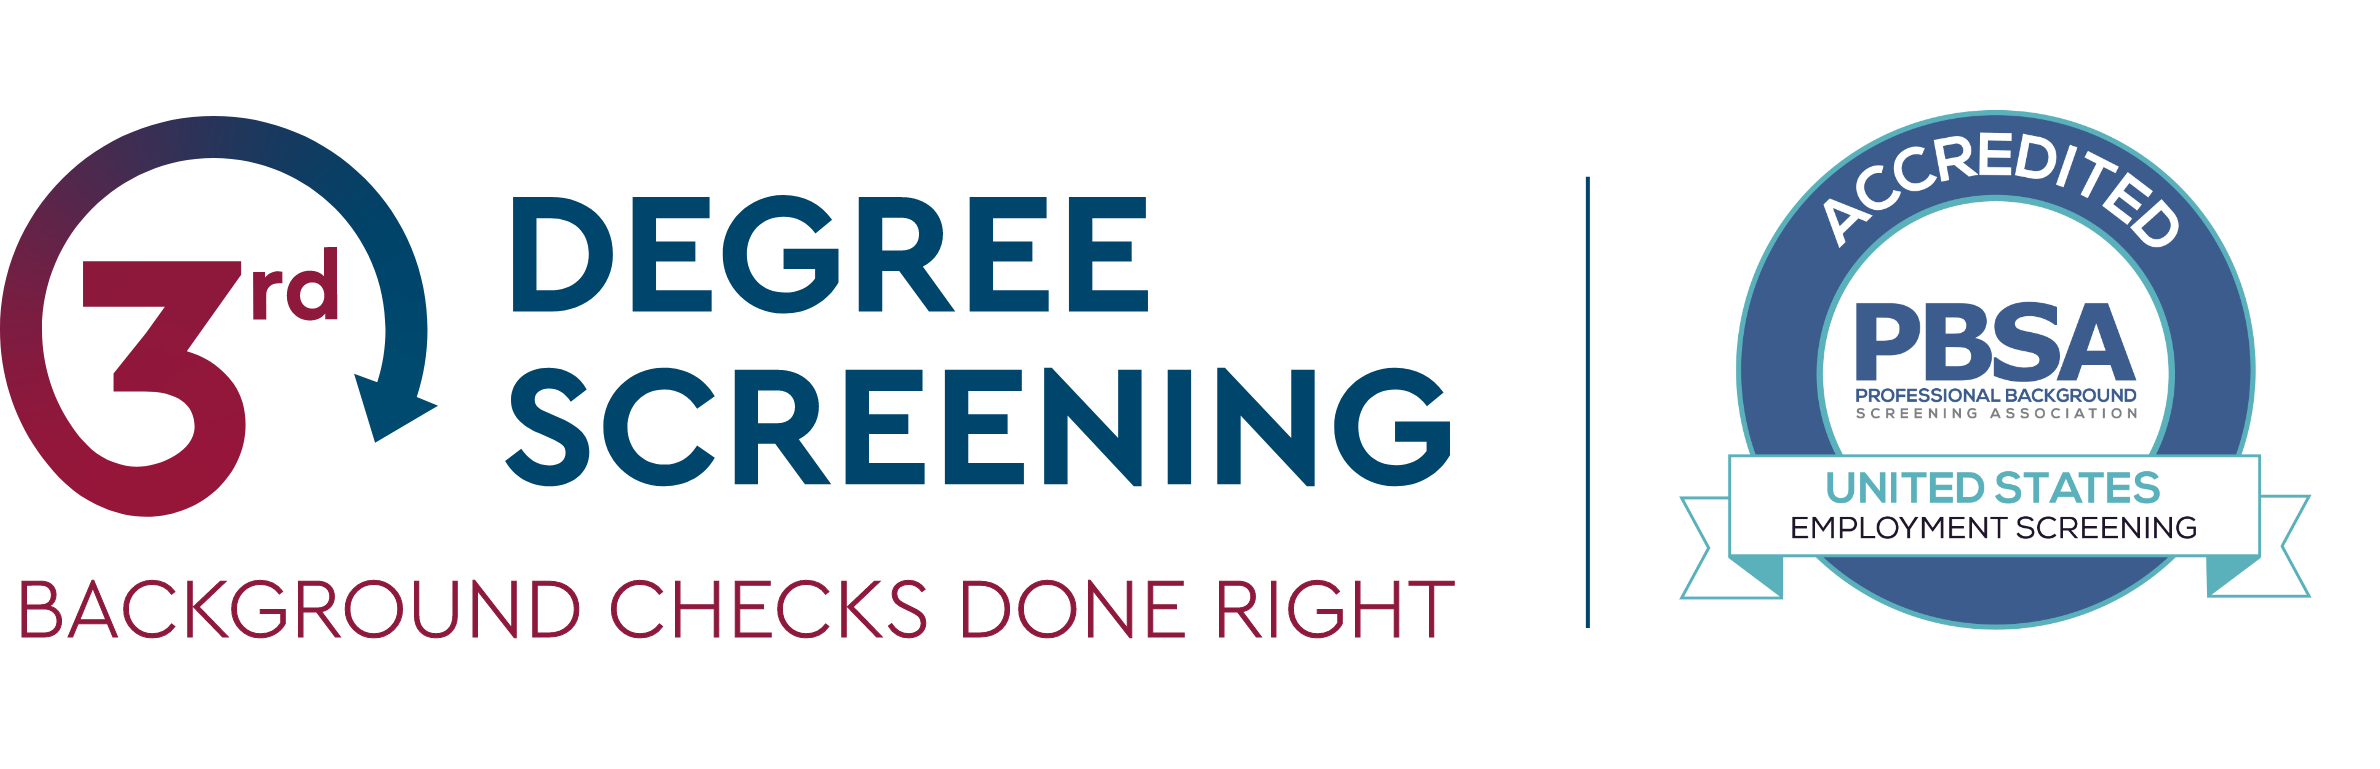 3RD DEGREE SCREENING, INC Achieves Background Screening Credentialing Council Accreditation